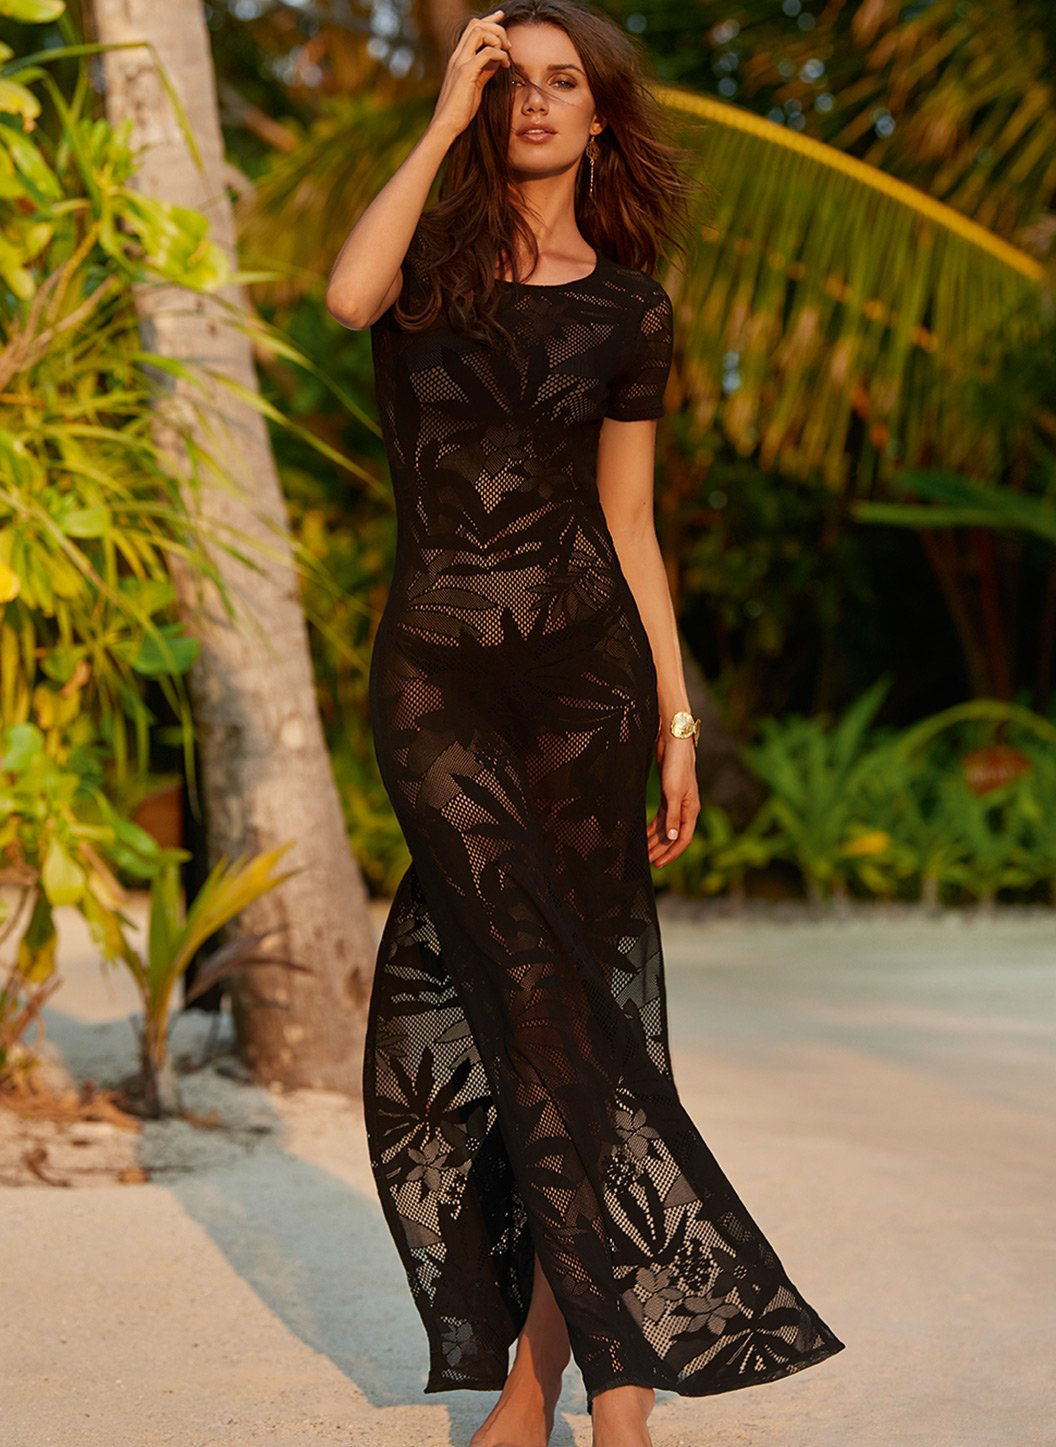 fran black tshirt maxi beach dress lifestyle 2019